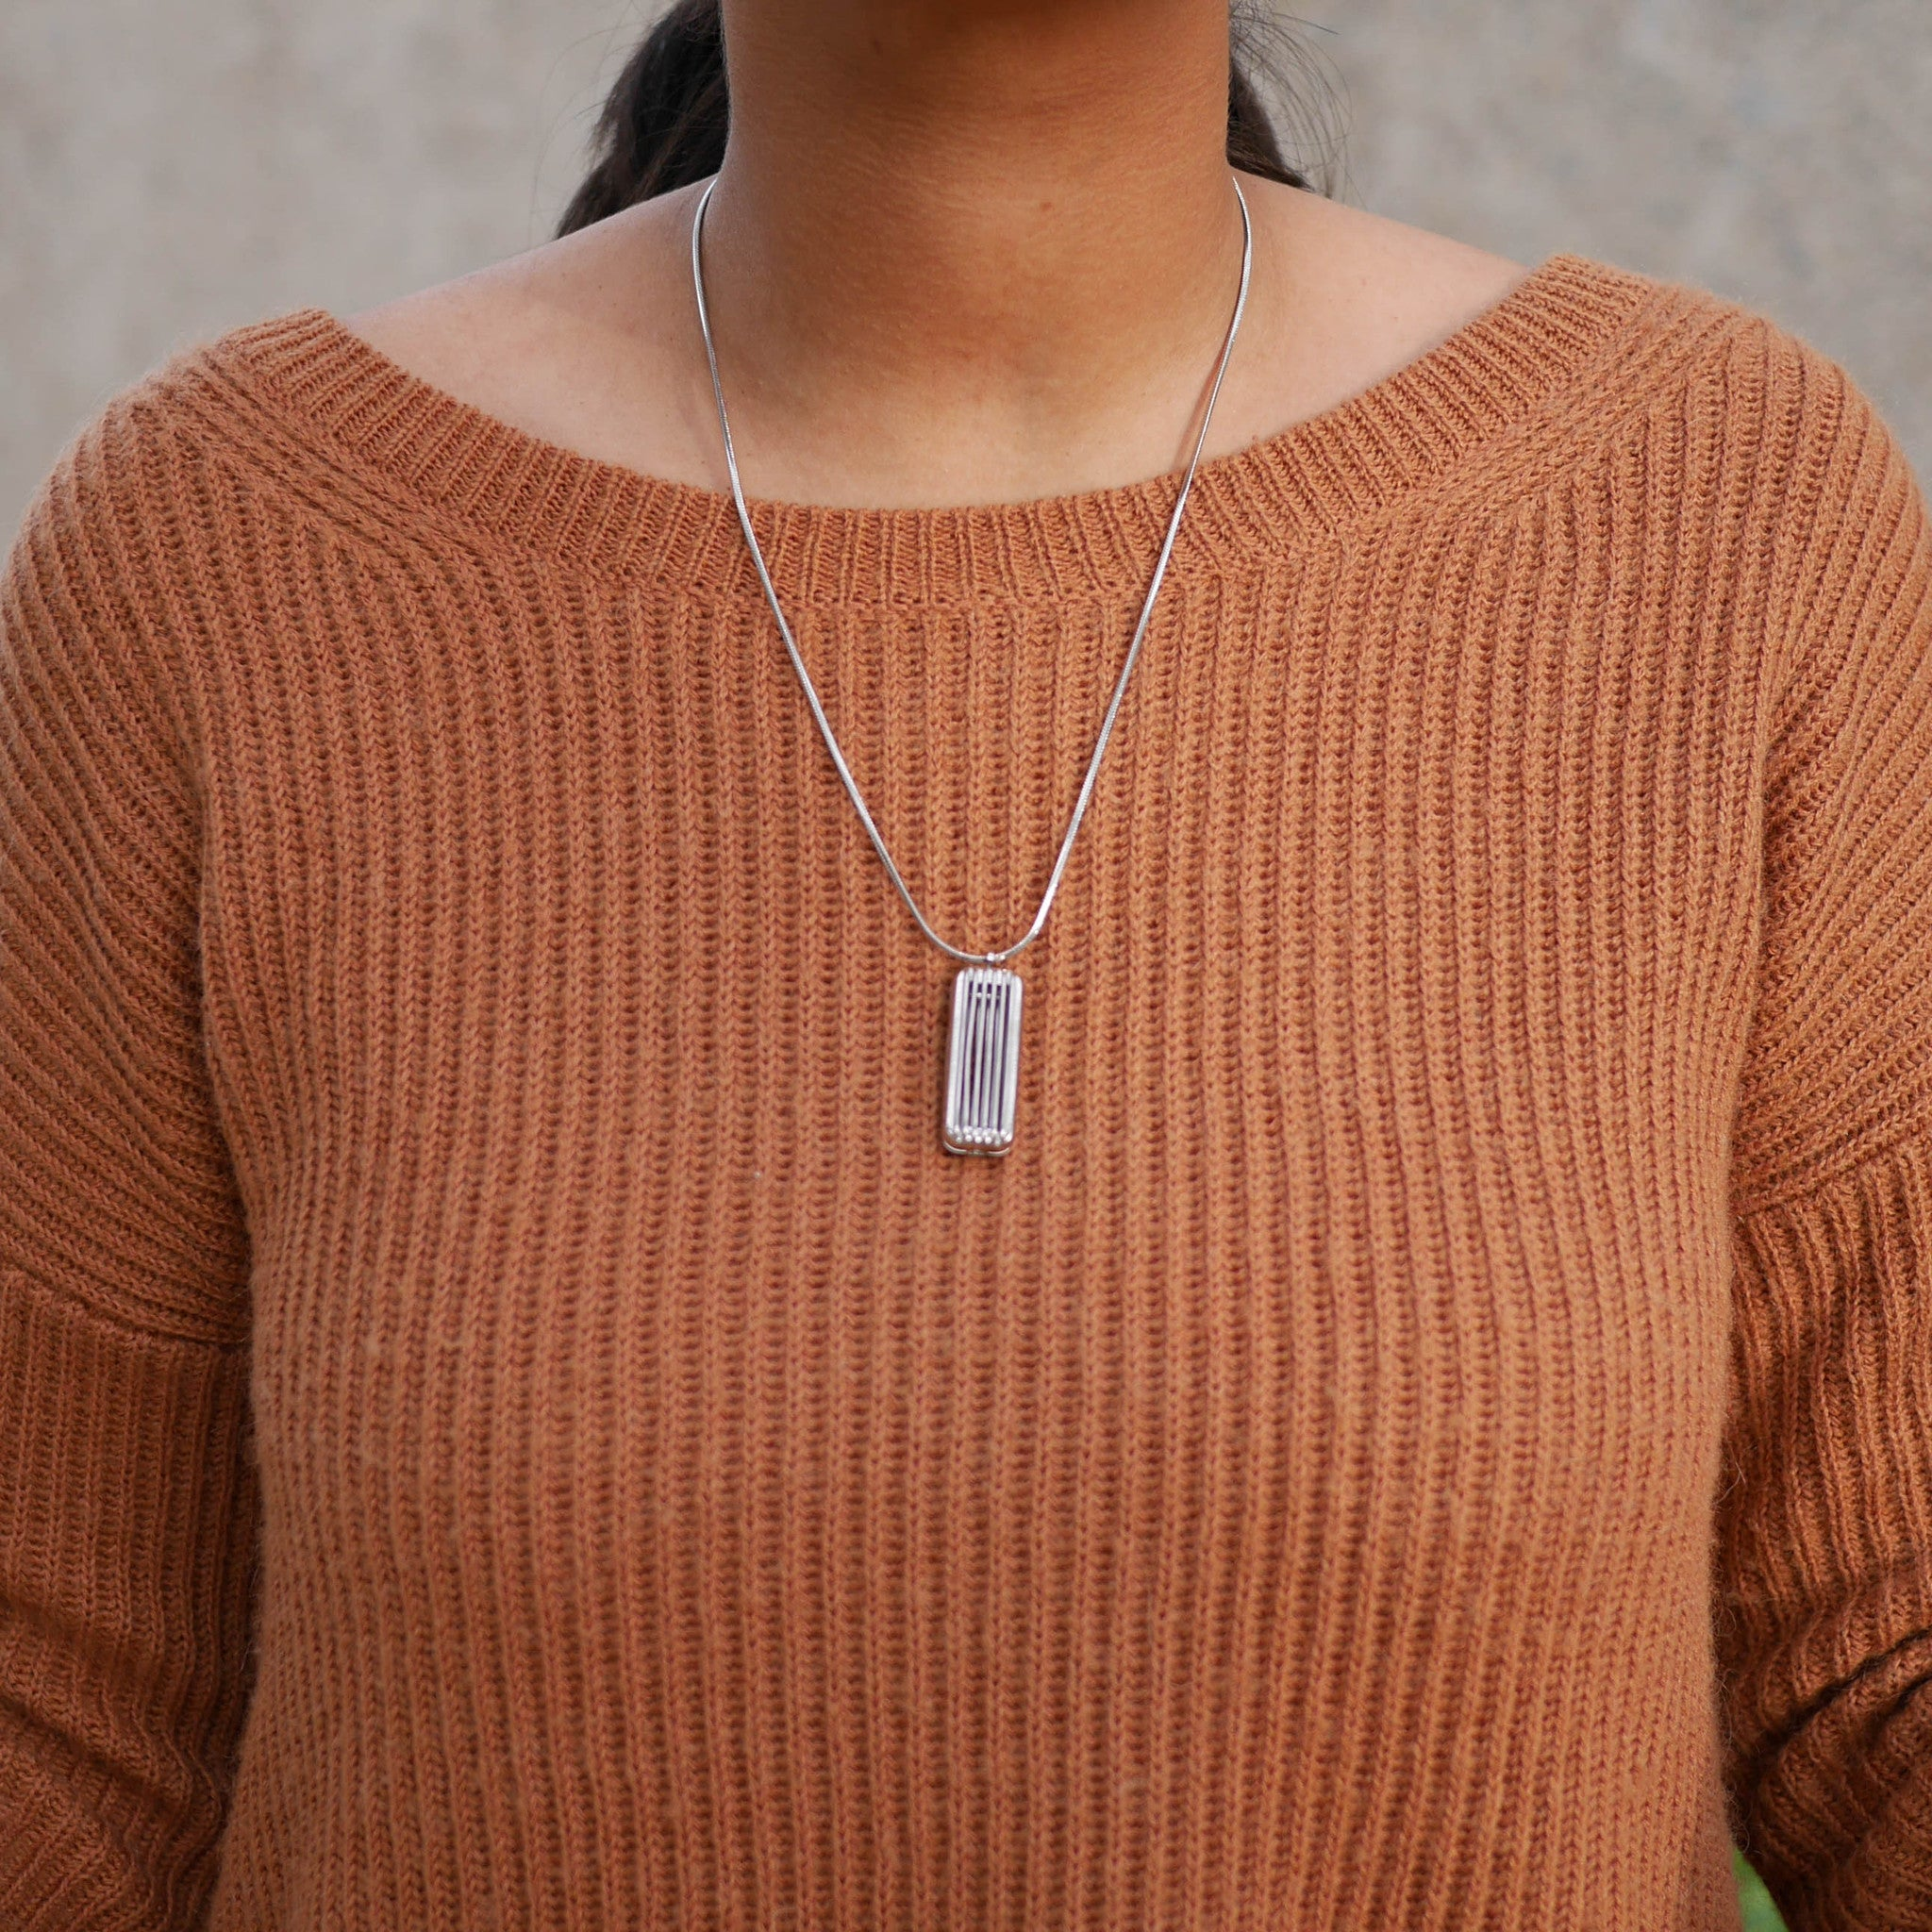 Silver Necklace for Fitbit Flex 2